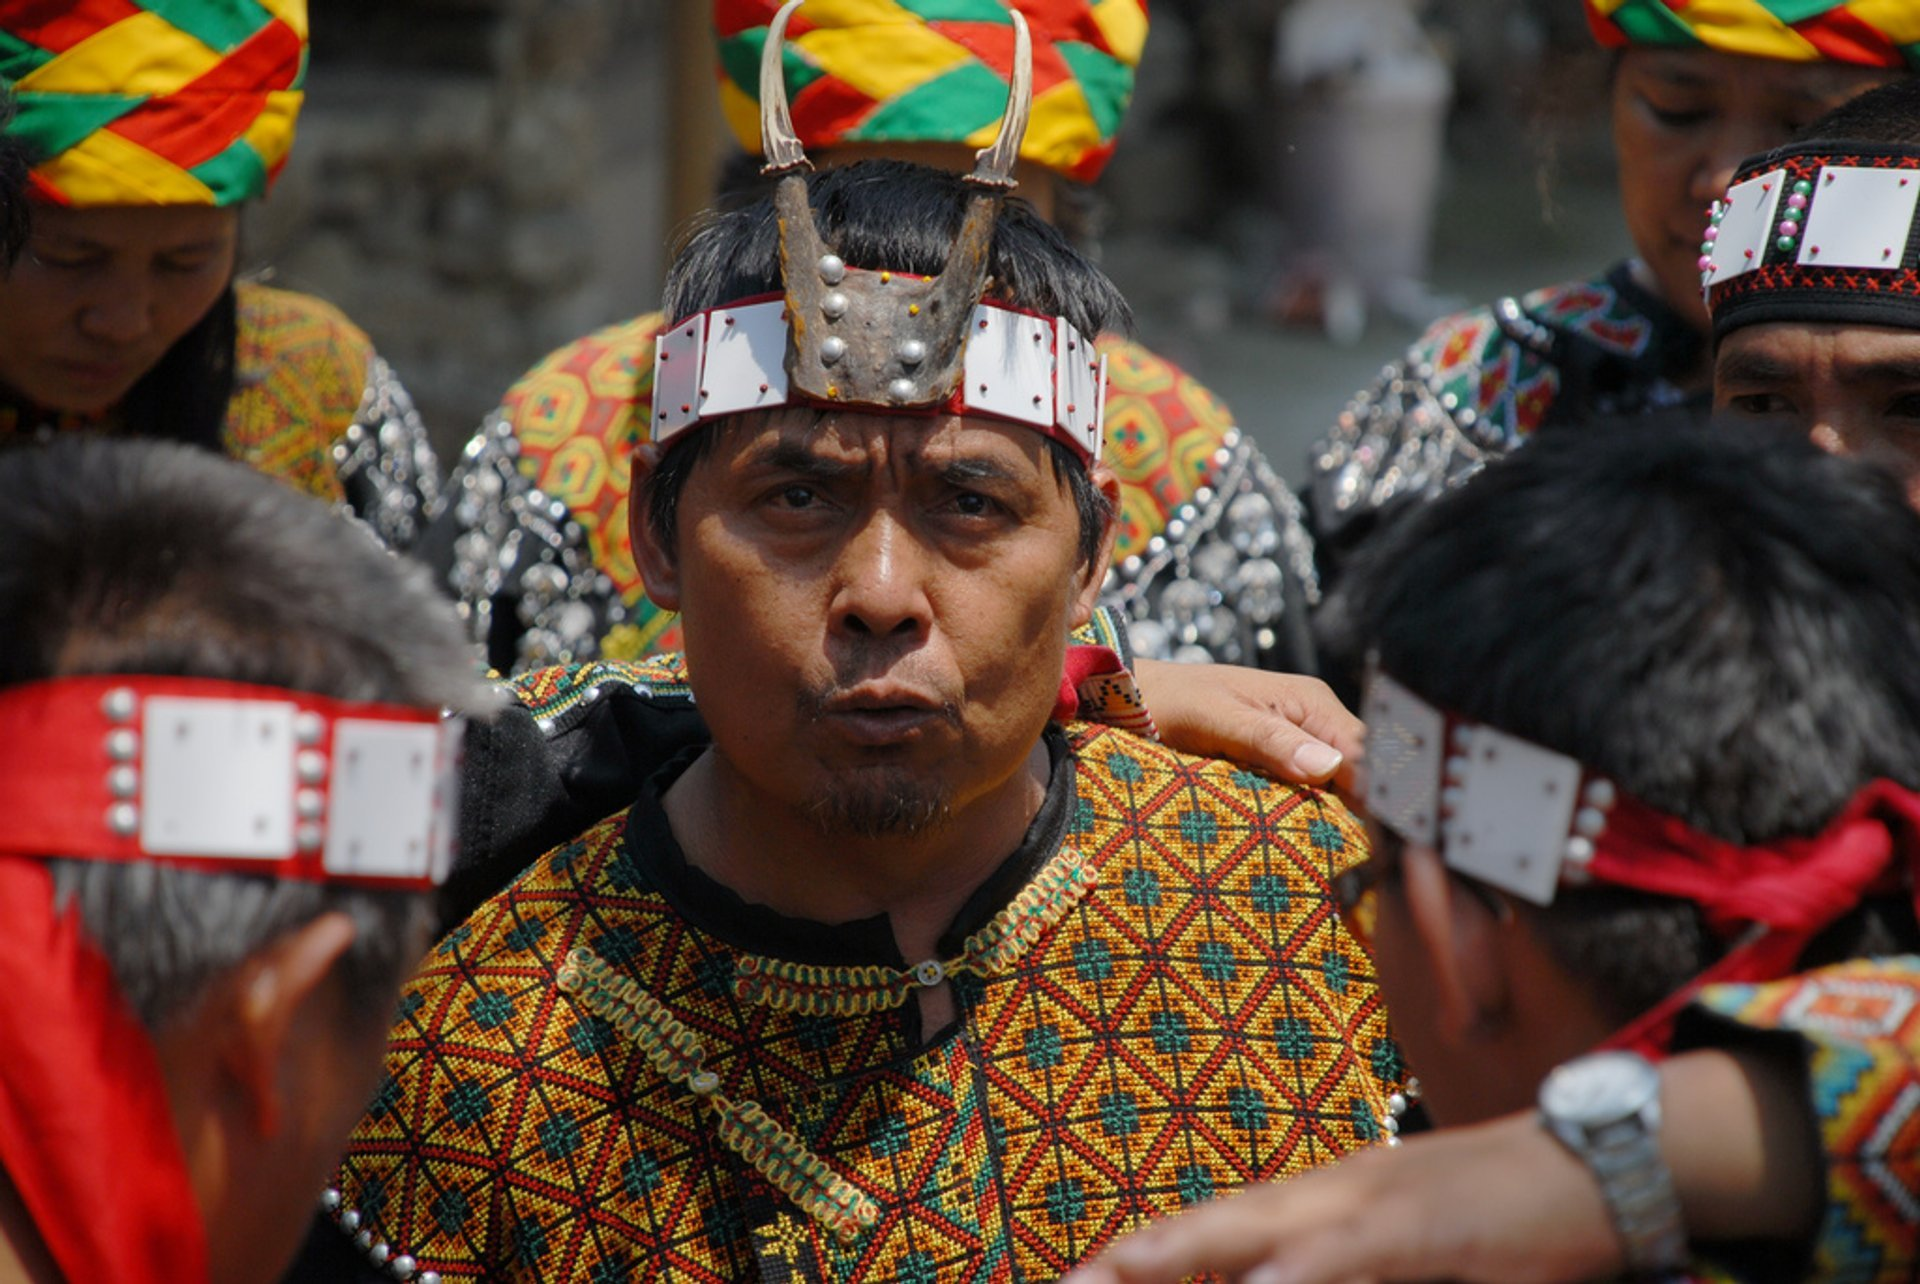 Ear-Shooting Festival (Mala-Ta-Ngia) of Bunun Tribe in Taiwan - Best Season 2019